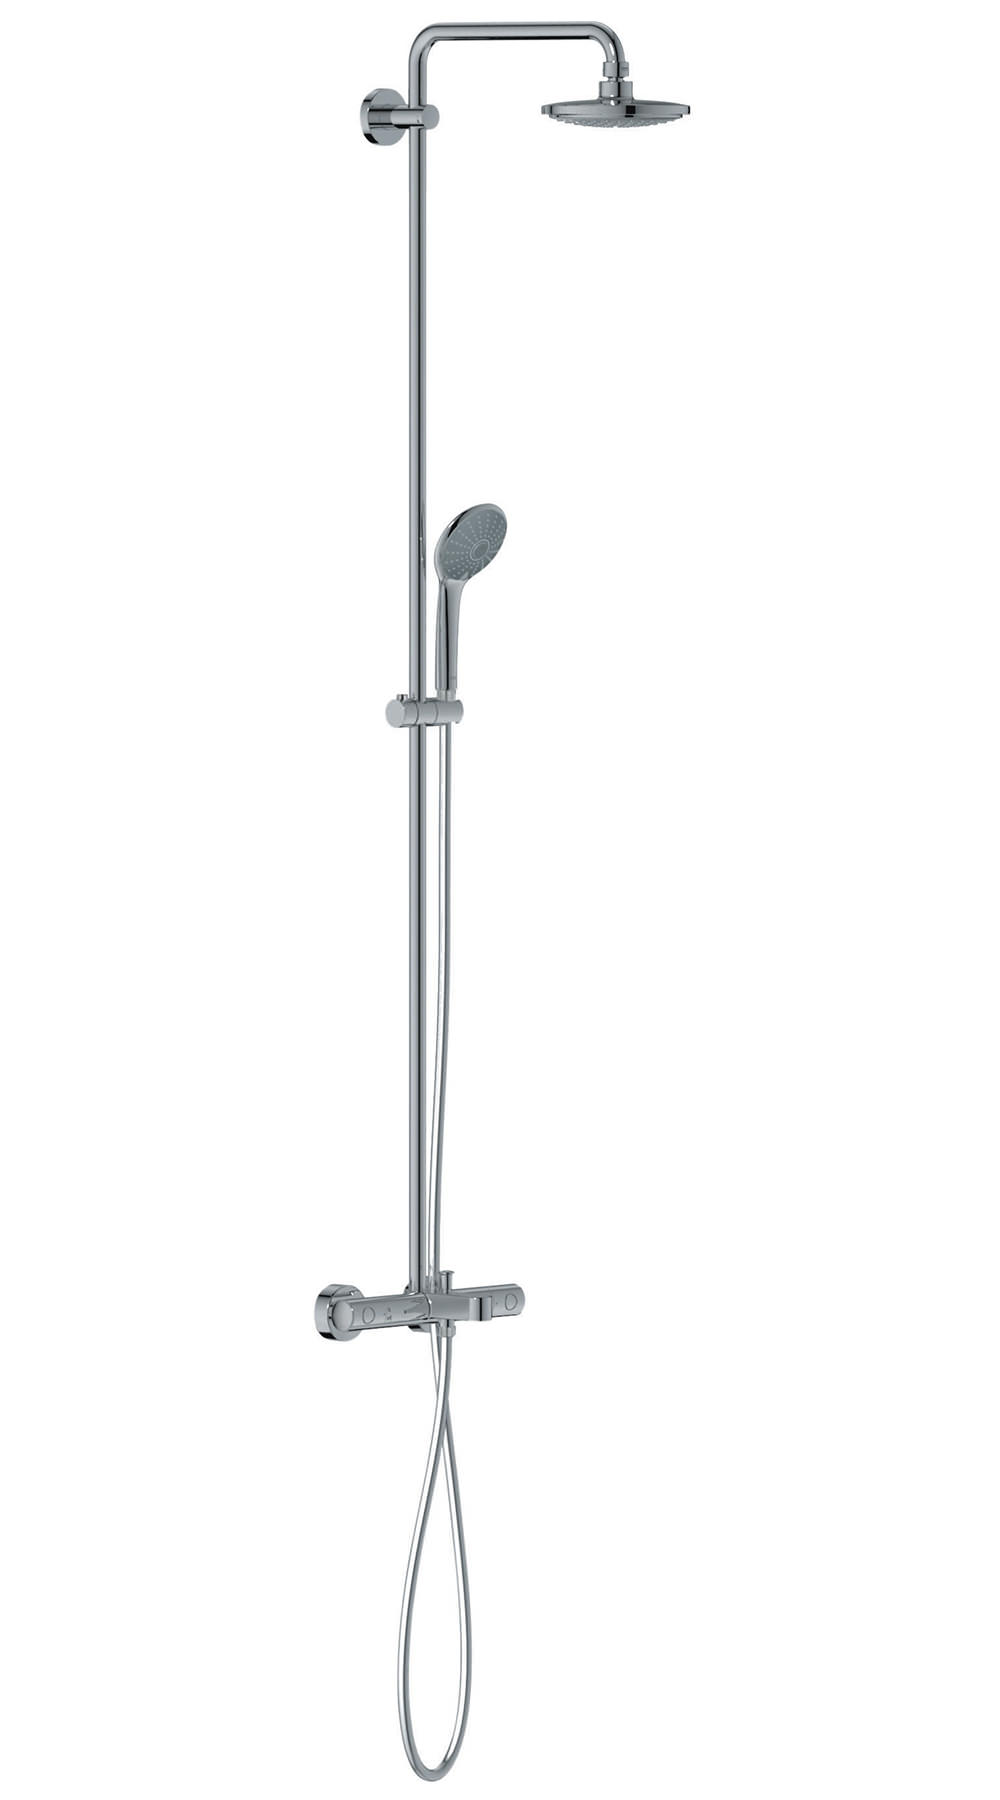 grohe euphoria thermostatic bath shower system chrome bj s home improvement bath amp shower systems